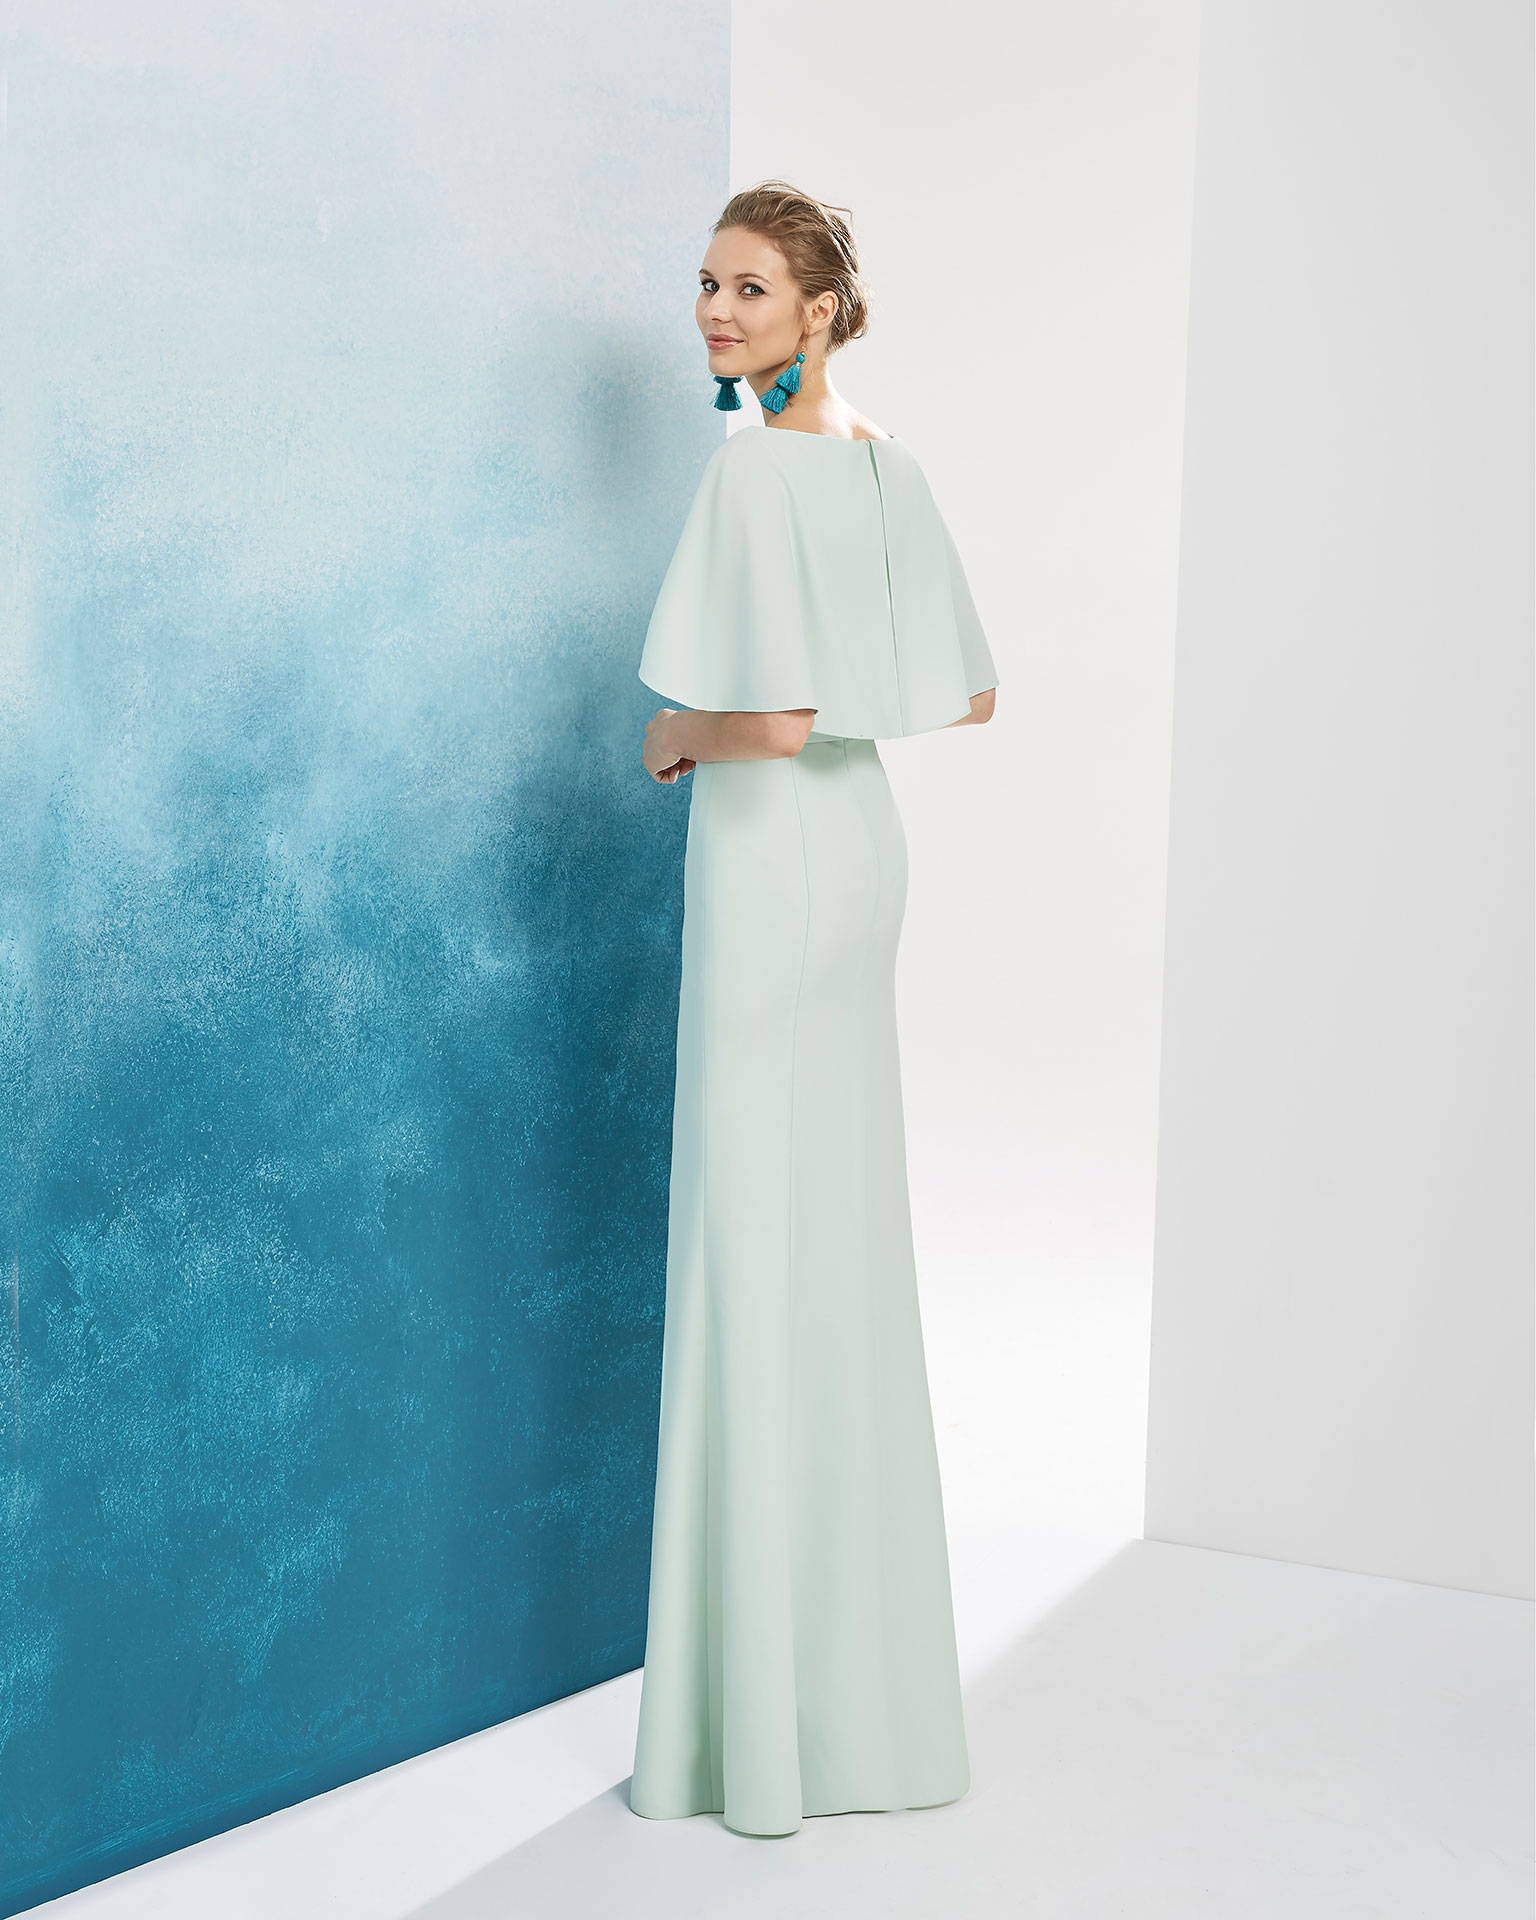 Crepe cocktail dress. With capelet, bateau neckline and beaded detail on the chest. Available in mint, aquamarine, silver and dusty pink. 2019 FIESTA AIRE BARCELONA Collection.